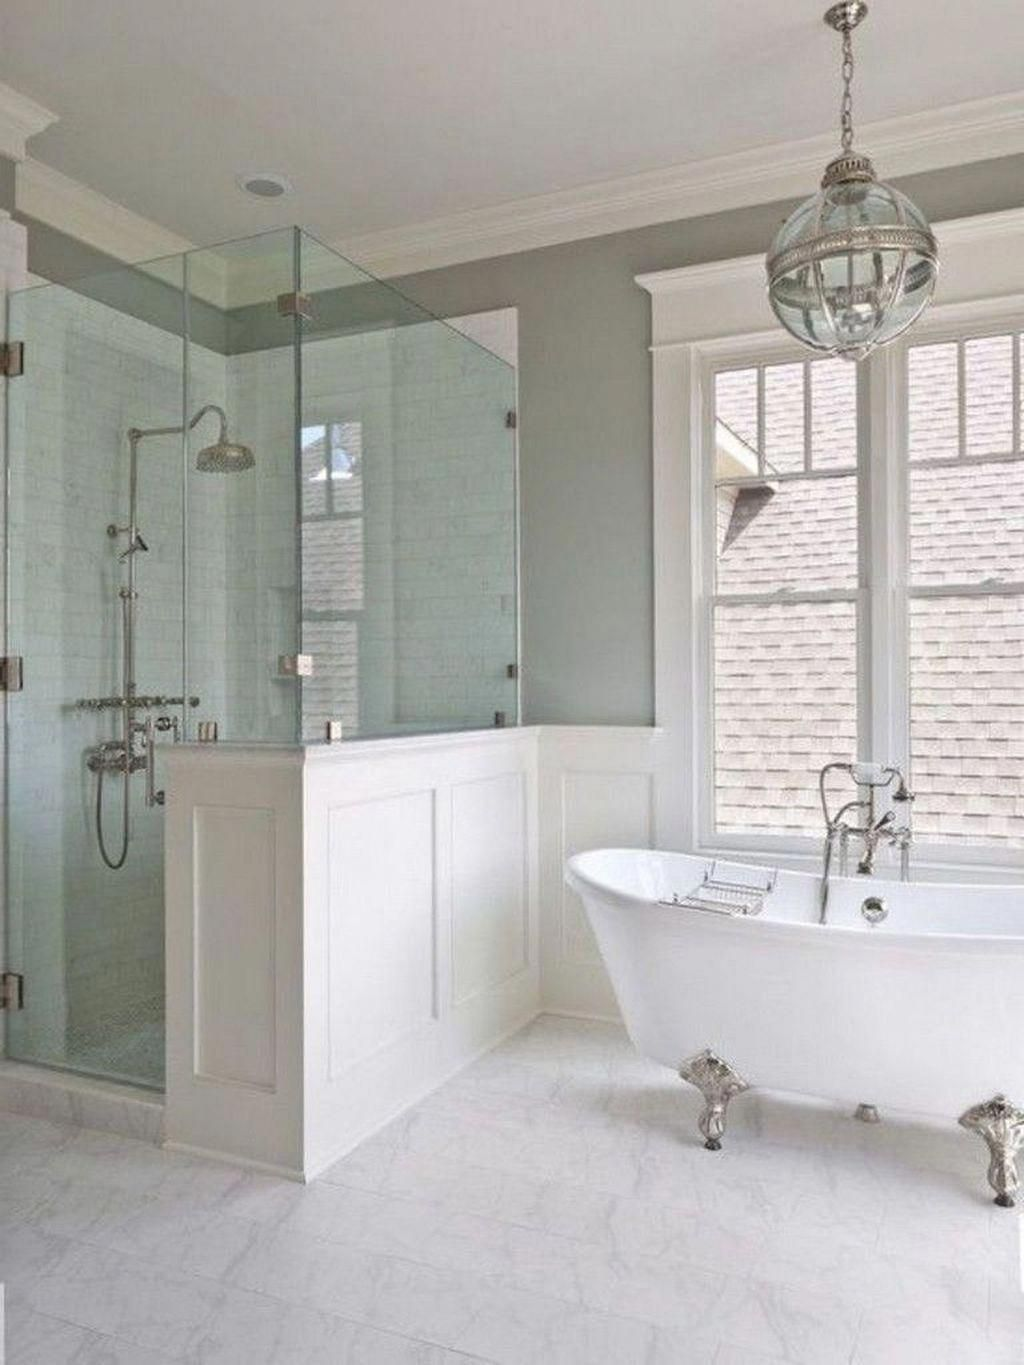 Examine This Essential Picture In Order To Take A Look At The Offered Help And Advice On O Bathroom Remodel Master Bathroom Remodel Designs Tiny House Bathroom